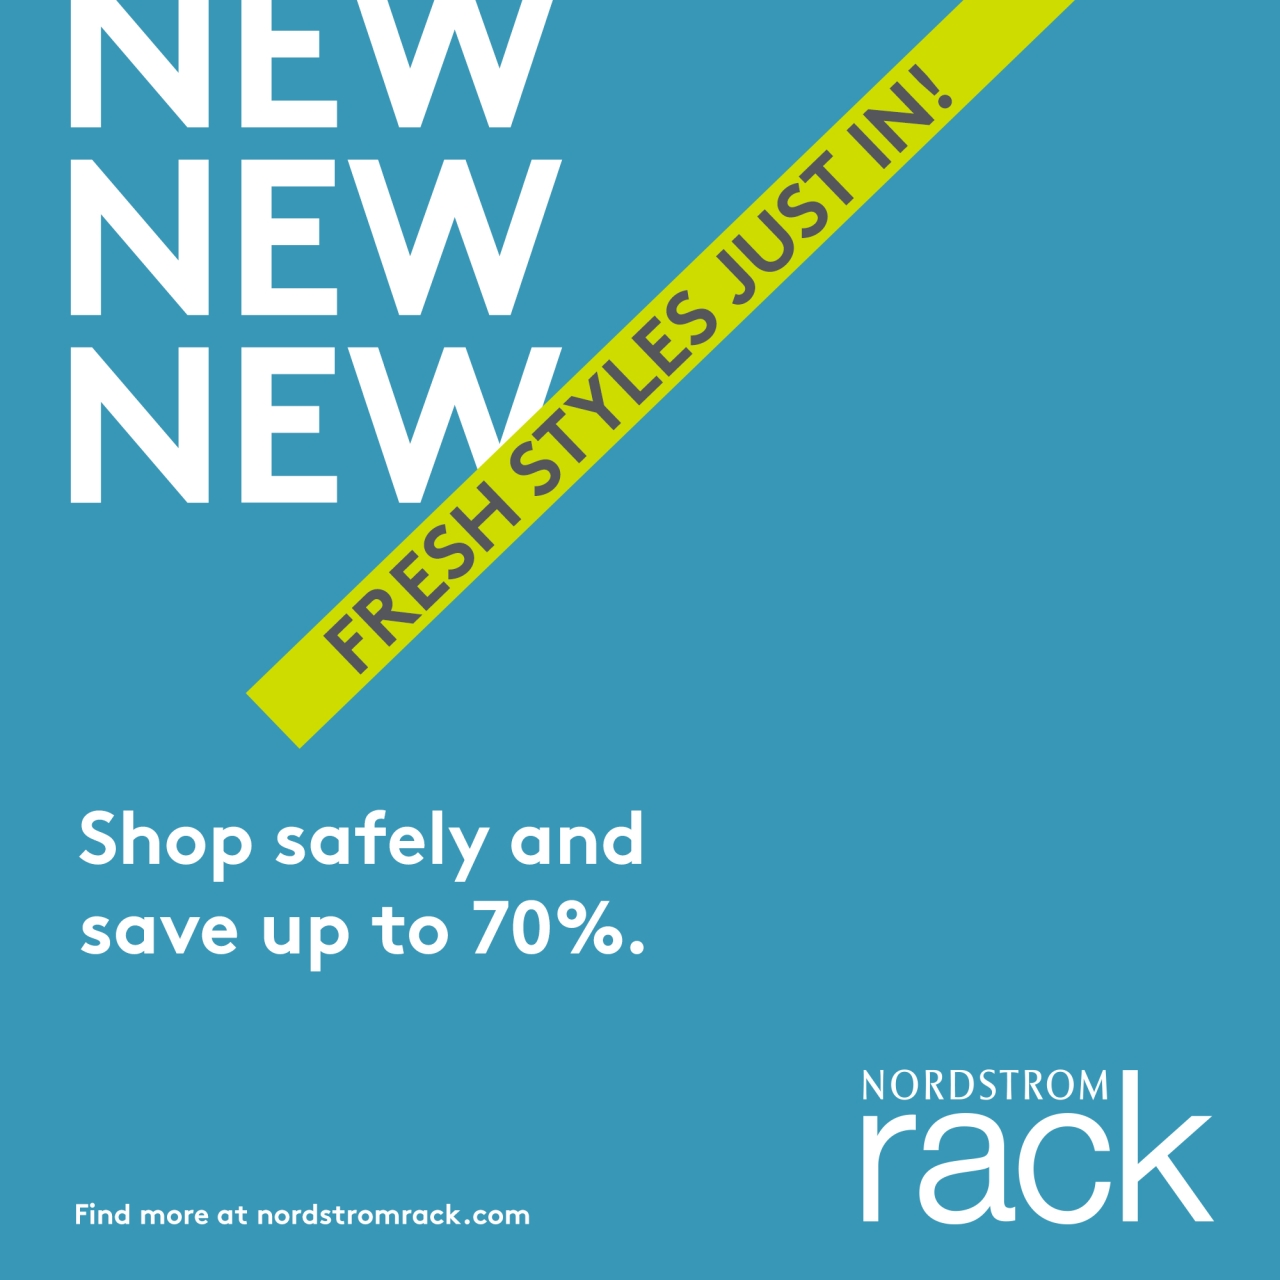 NEW styles just in! from Nordstrom Rack